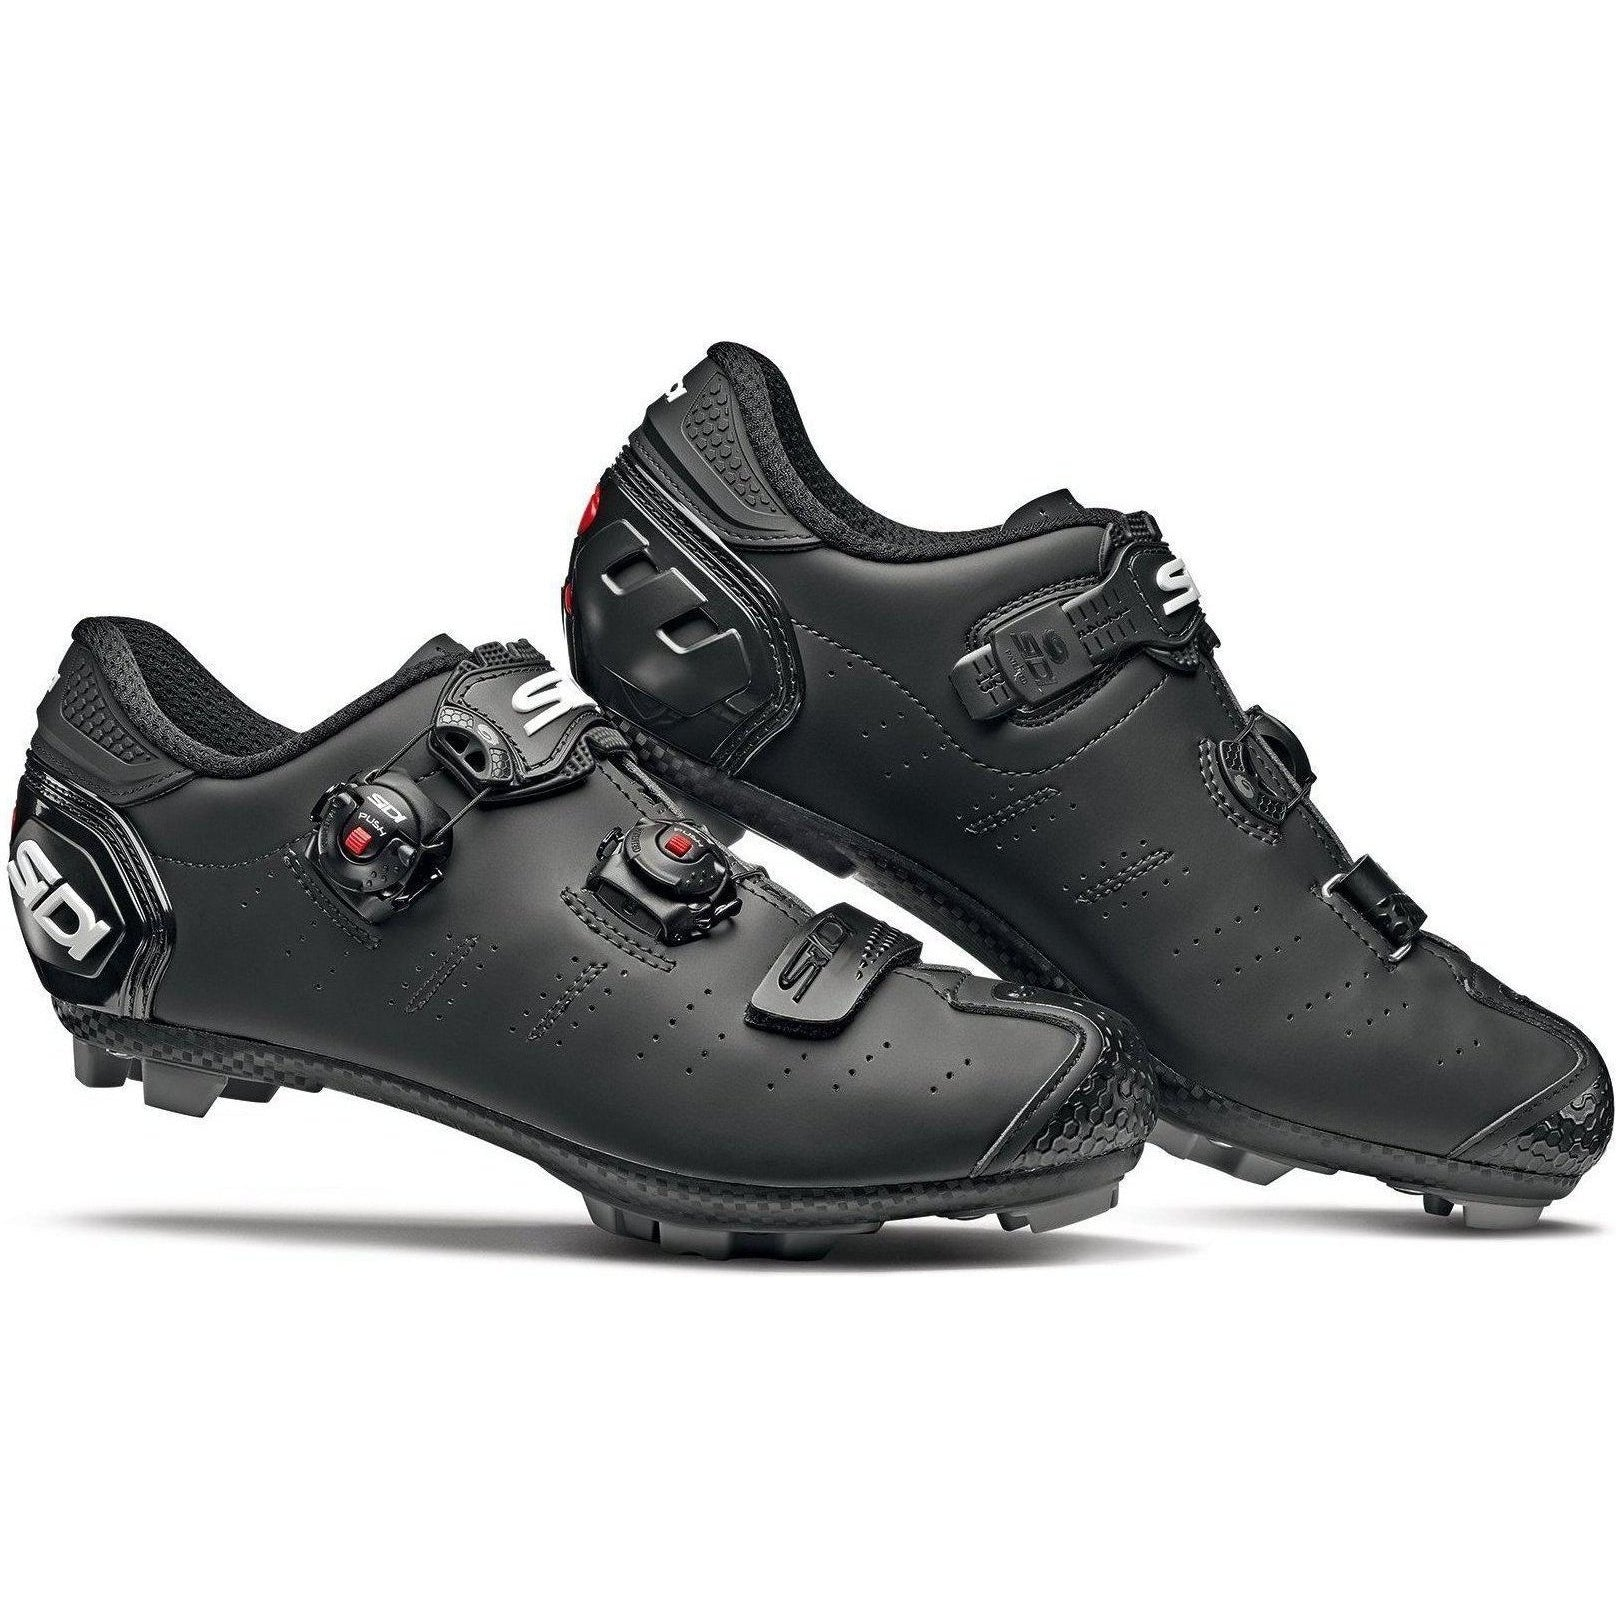 Sidi-Sidi Dragon 5 SRS MTB Shoes - Matt-Matt Black-39-SIDRAG5CMATNEOP39-saddleback-elite-performance-cycling